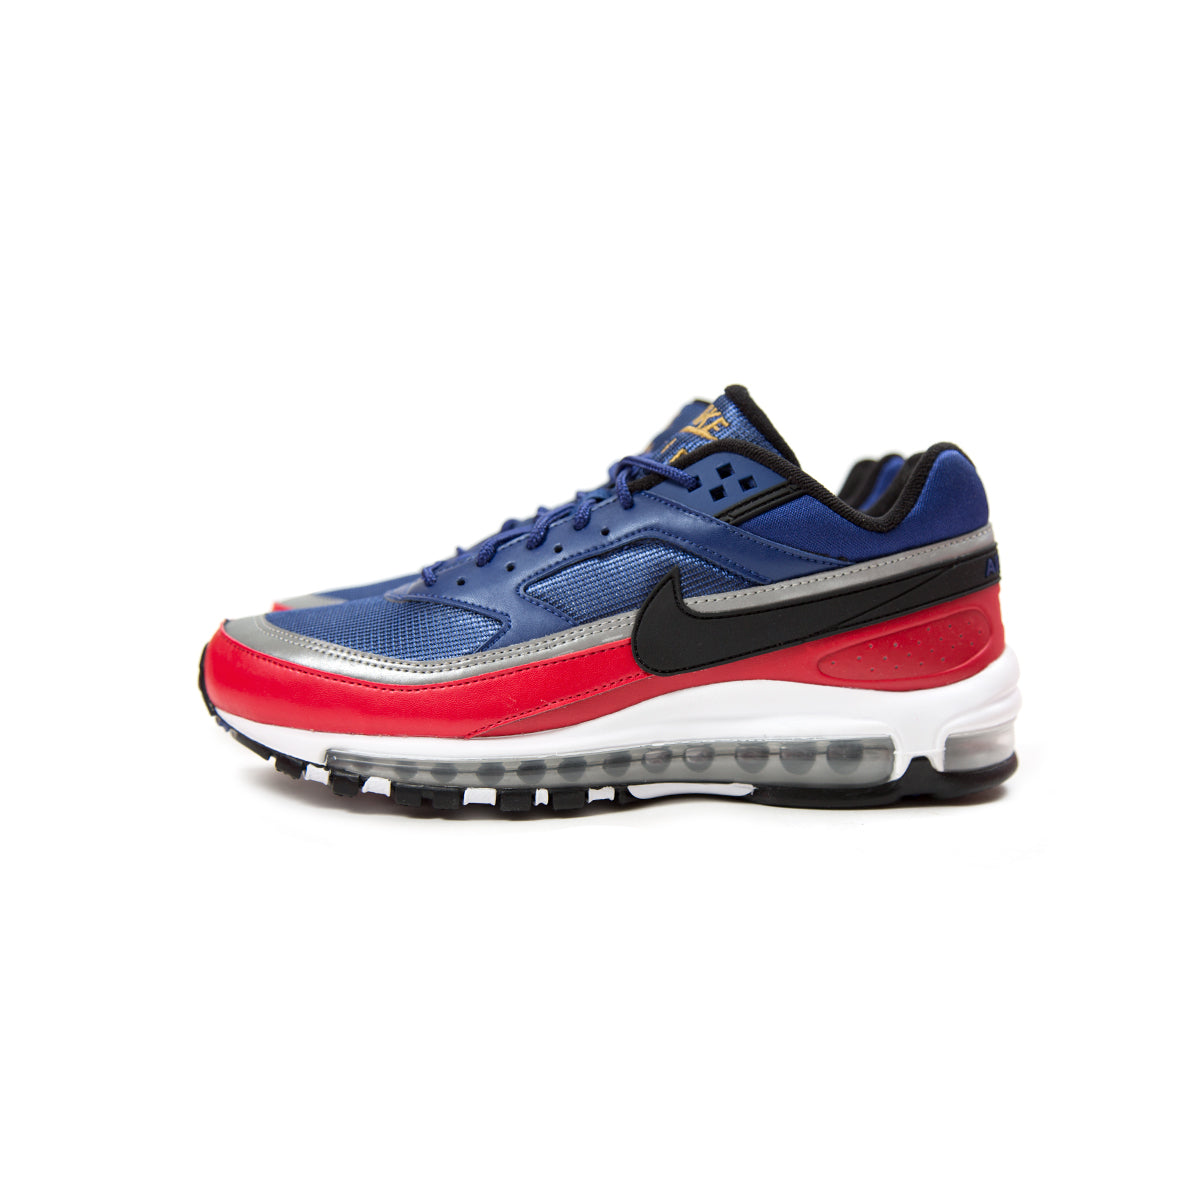 purchase cheap ab154 35178 ... where can i buy conceptsintl nike air max 97 bw deep royal blue black  university red